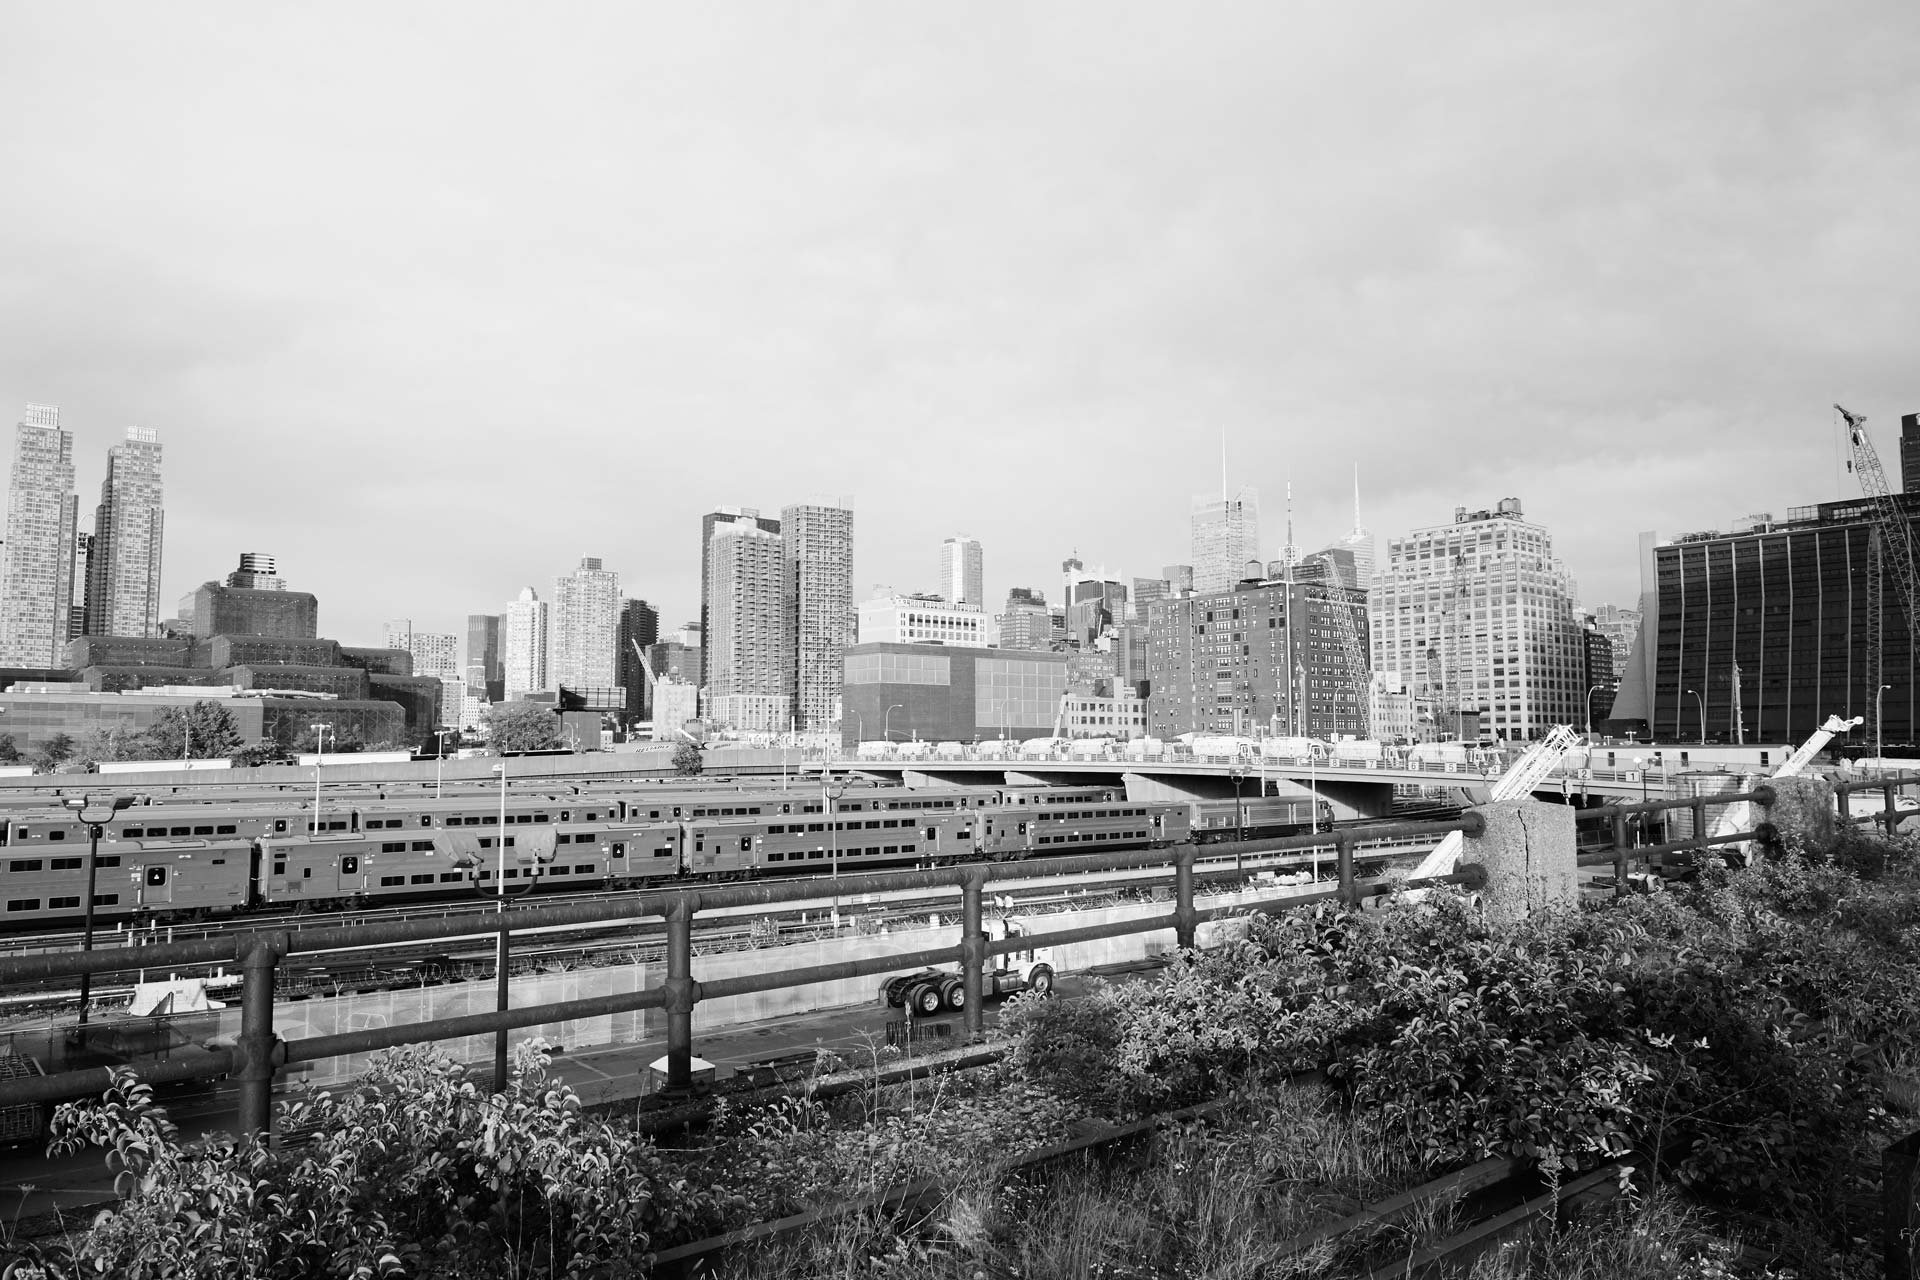 View from the High Line overlooking Hudson Yards